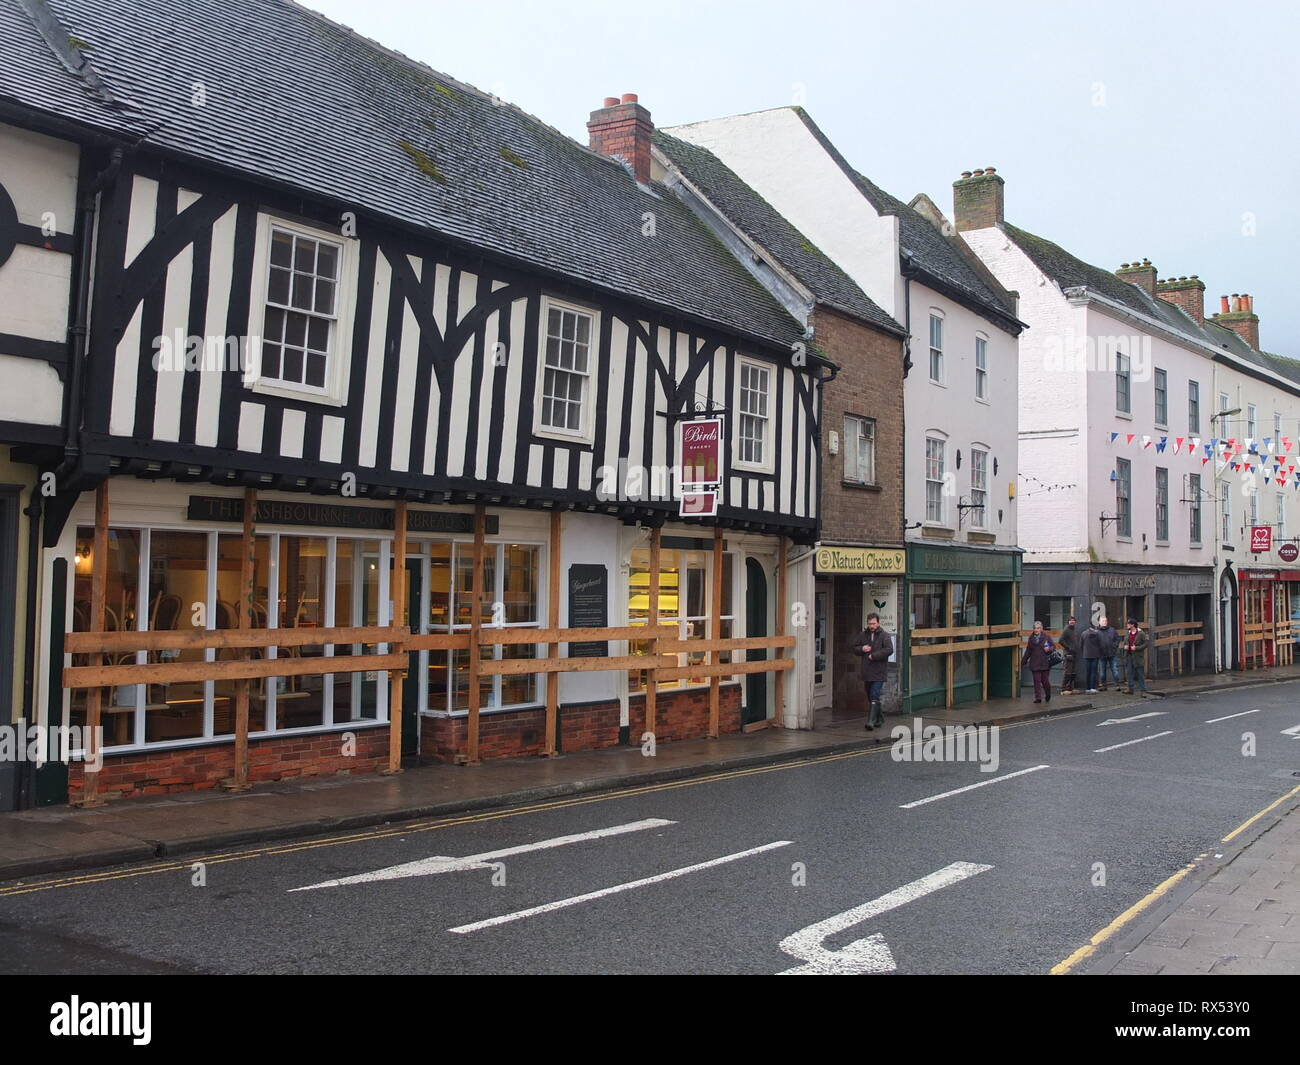 Ashbourne Shrovetide Football 2019. Shops in the historic town including the Tudor Ashbourne Gingerbread Shop are boarded up prior to the match. Stock Photo